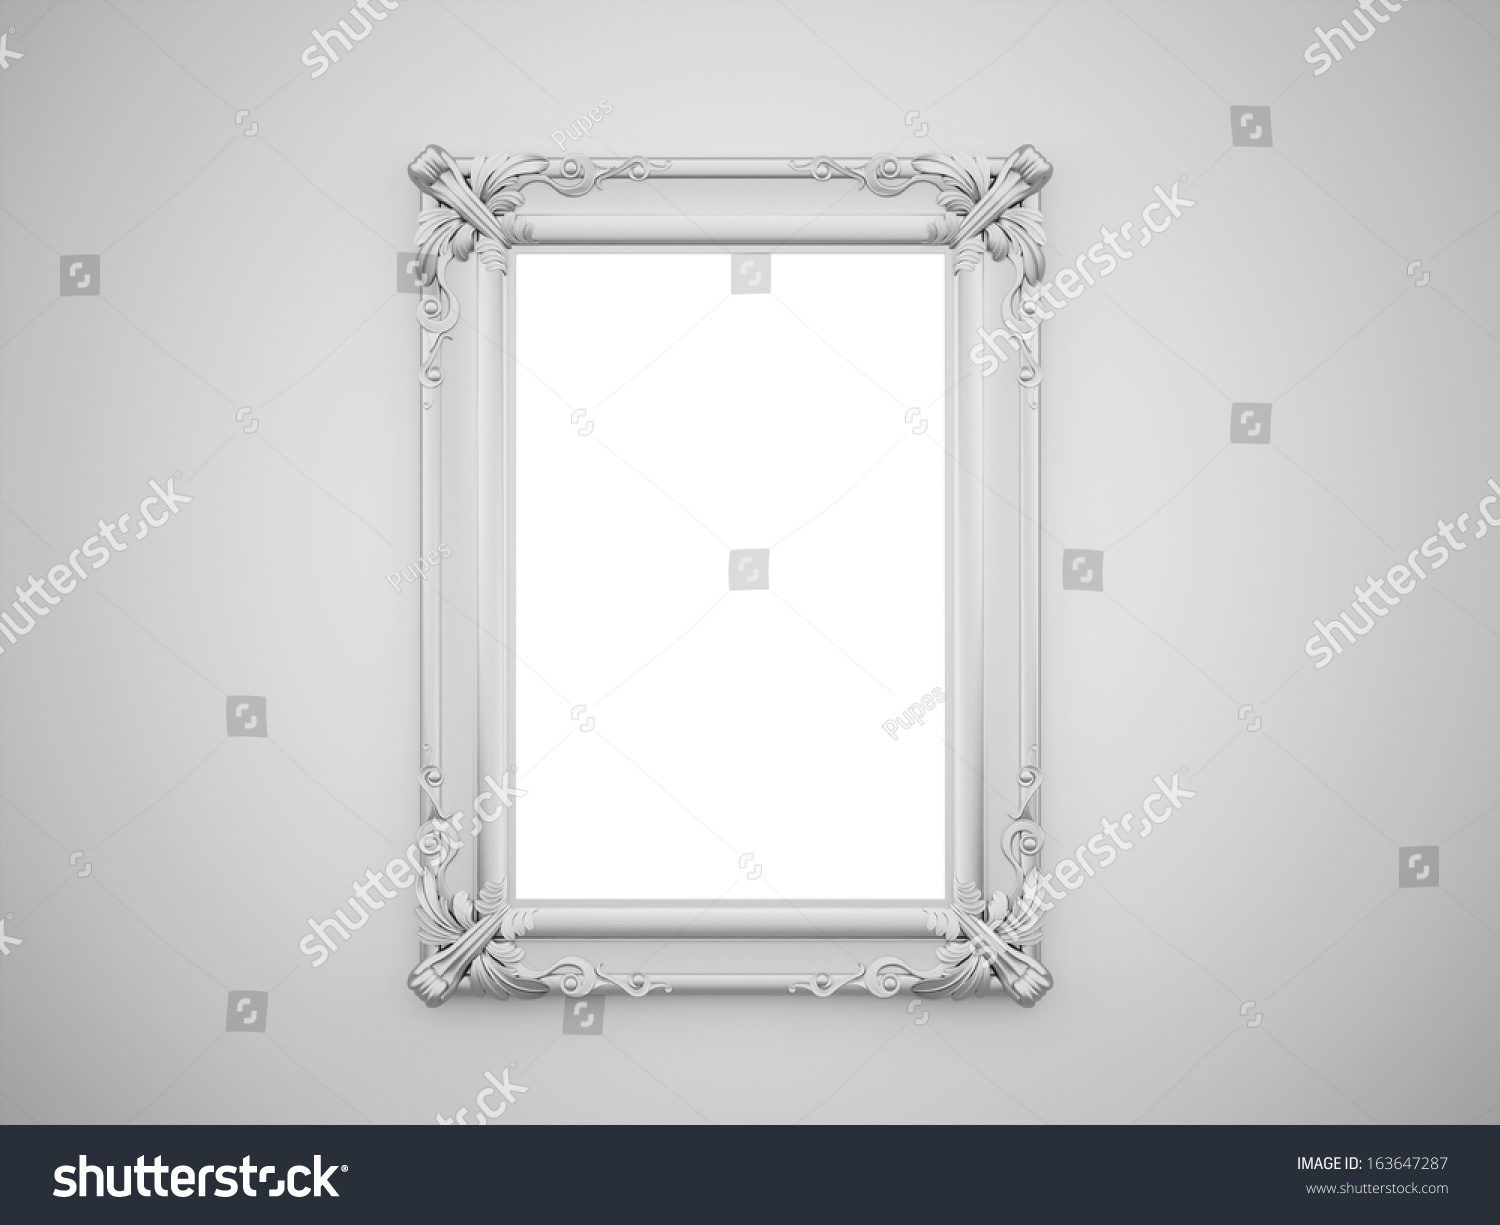 Silver Mirror Wall Photo Frame: Vintage Mirror With Silver Frame On The Wall Rendered